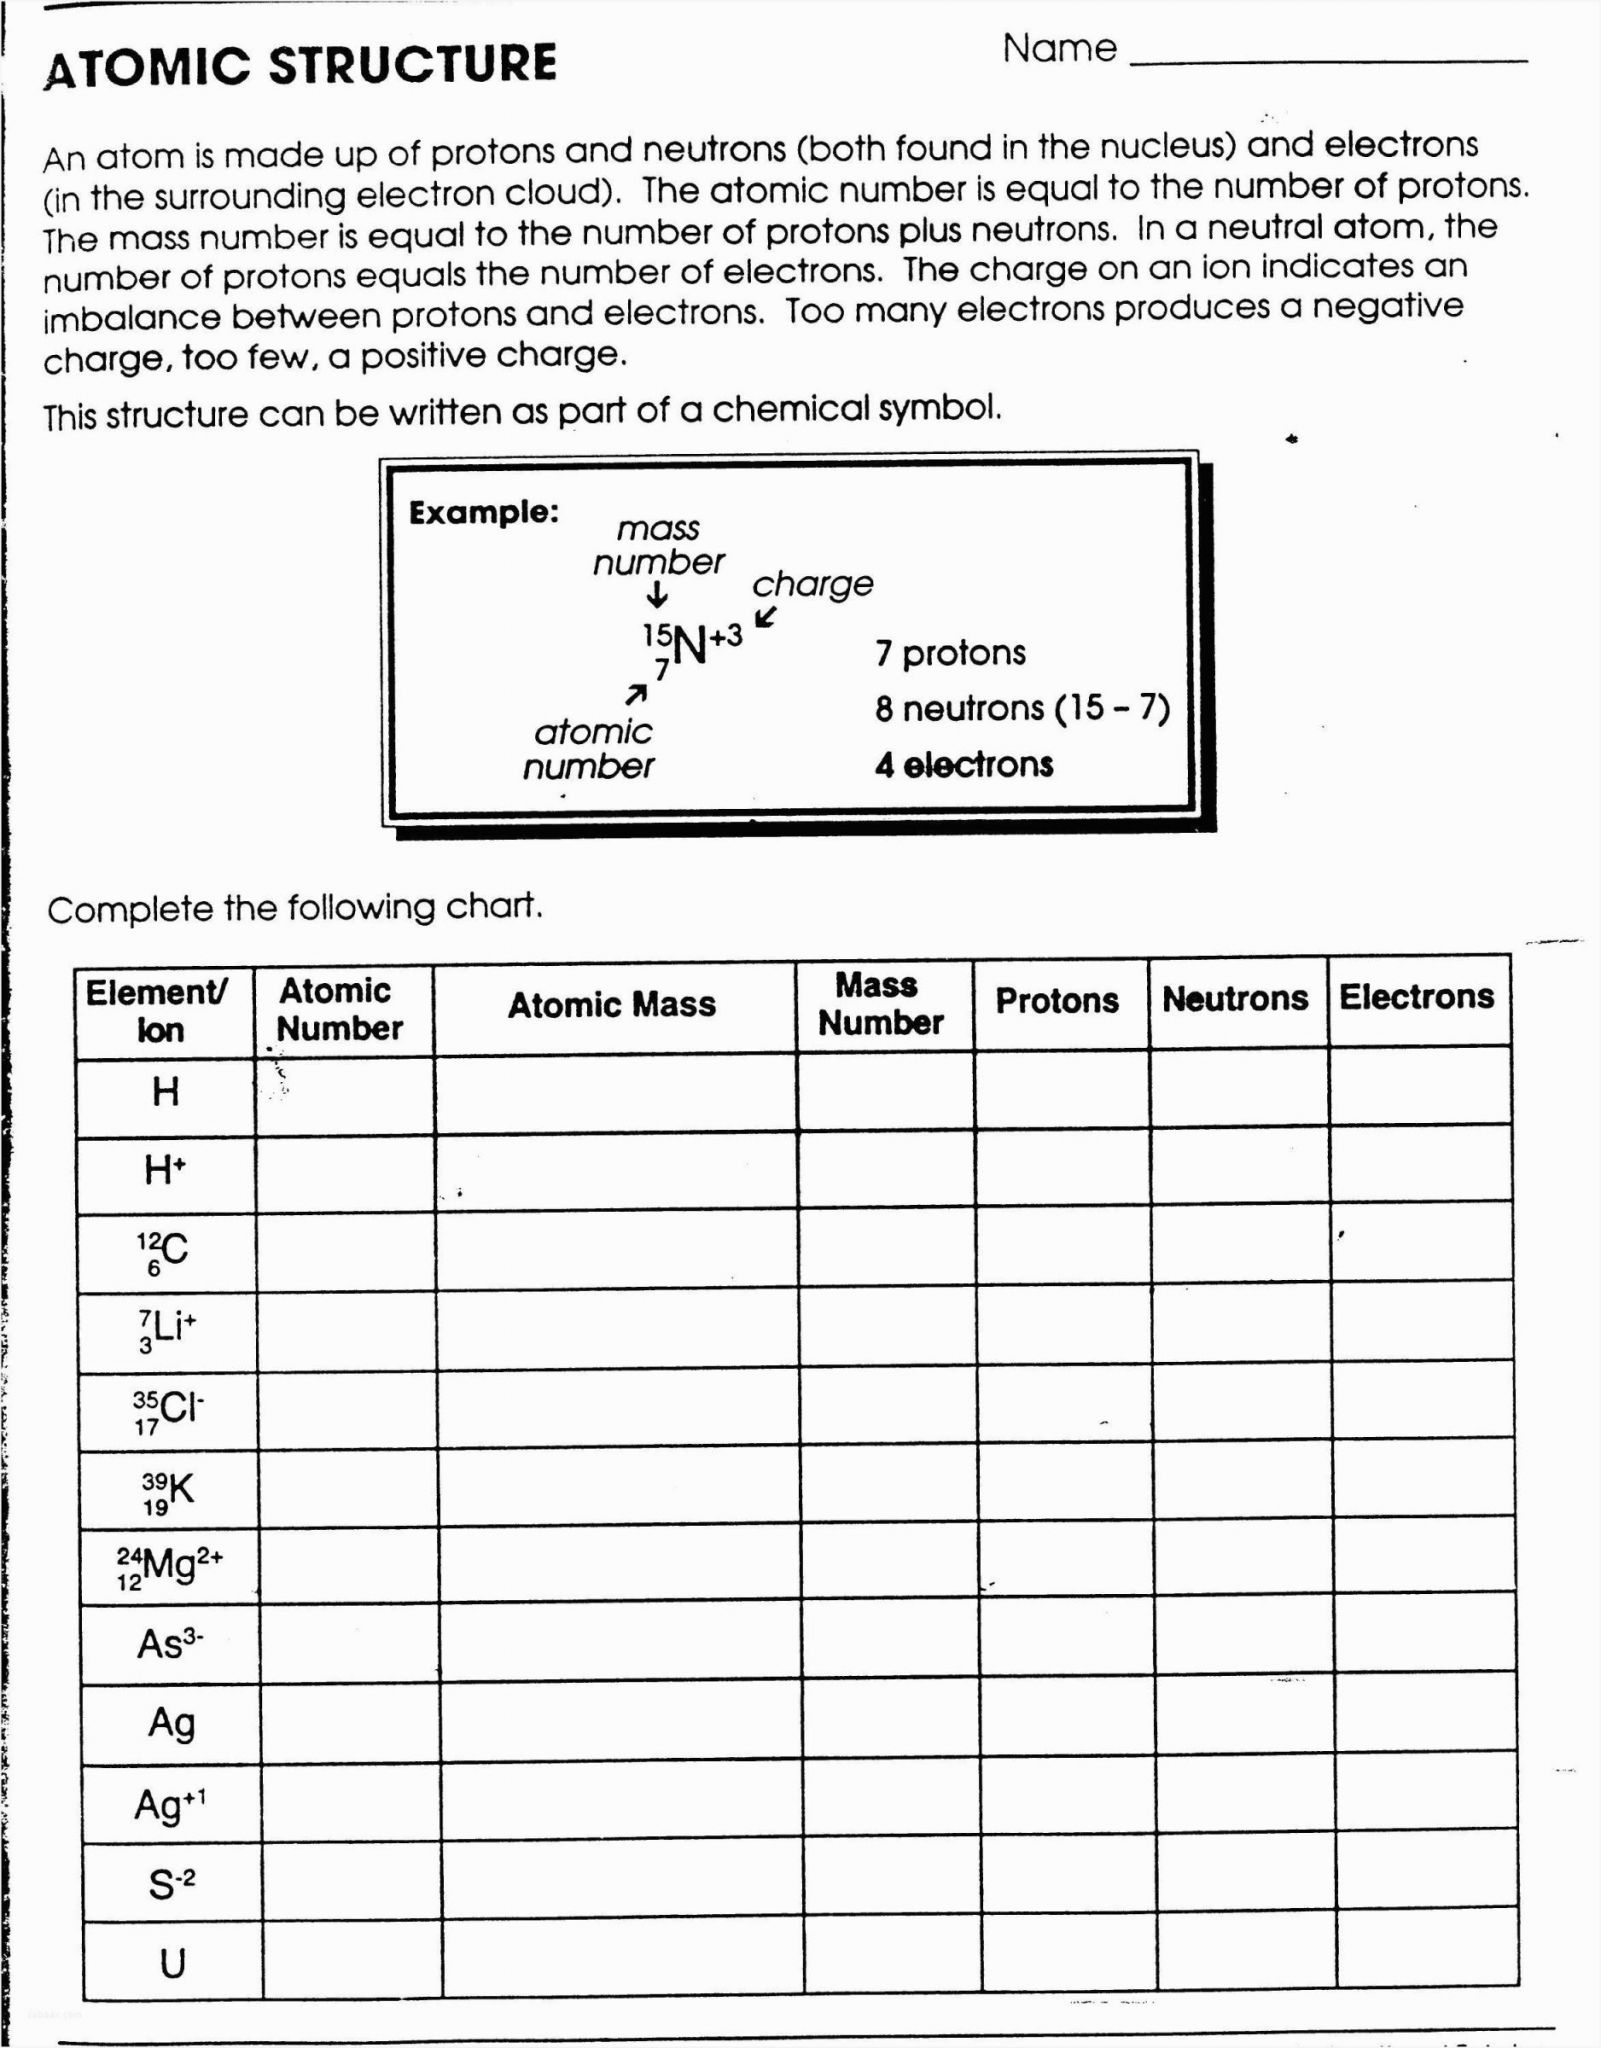 Atomic Structure And Theory Worksheet Answers